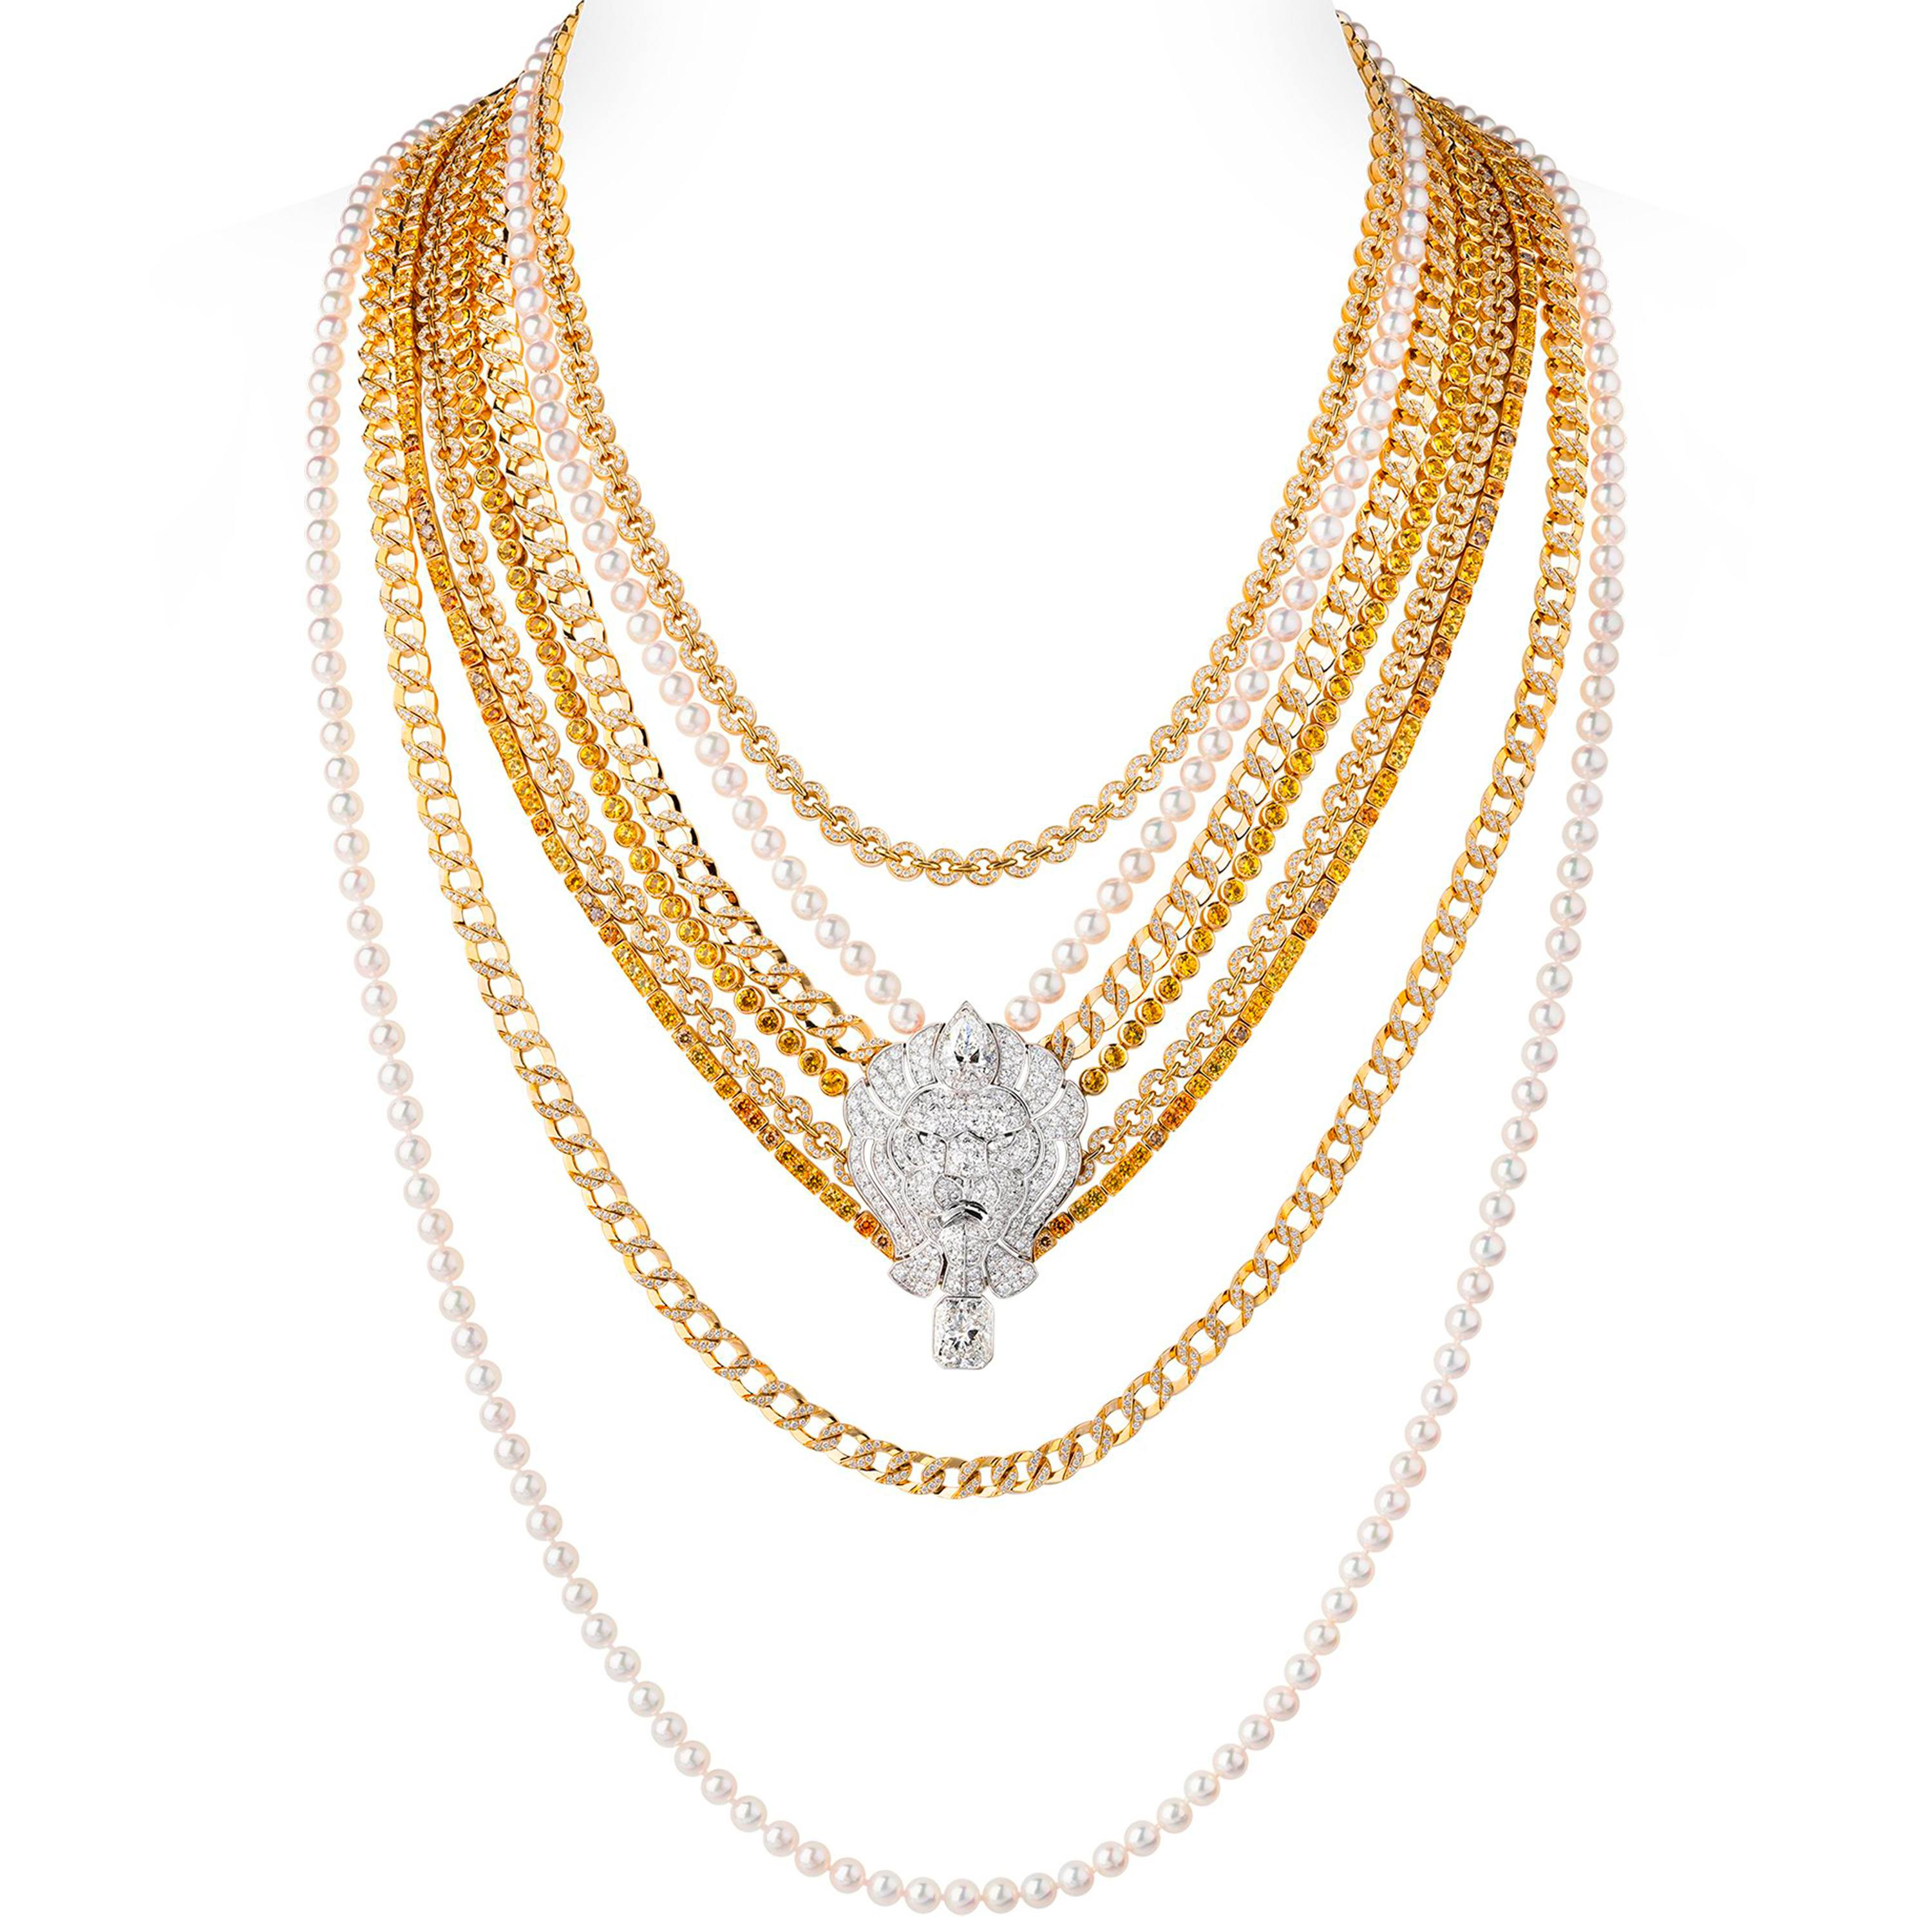 Chanel High Jewelry necklace in 18k white and yellow gold from the L'Esprit du Lion collection